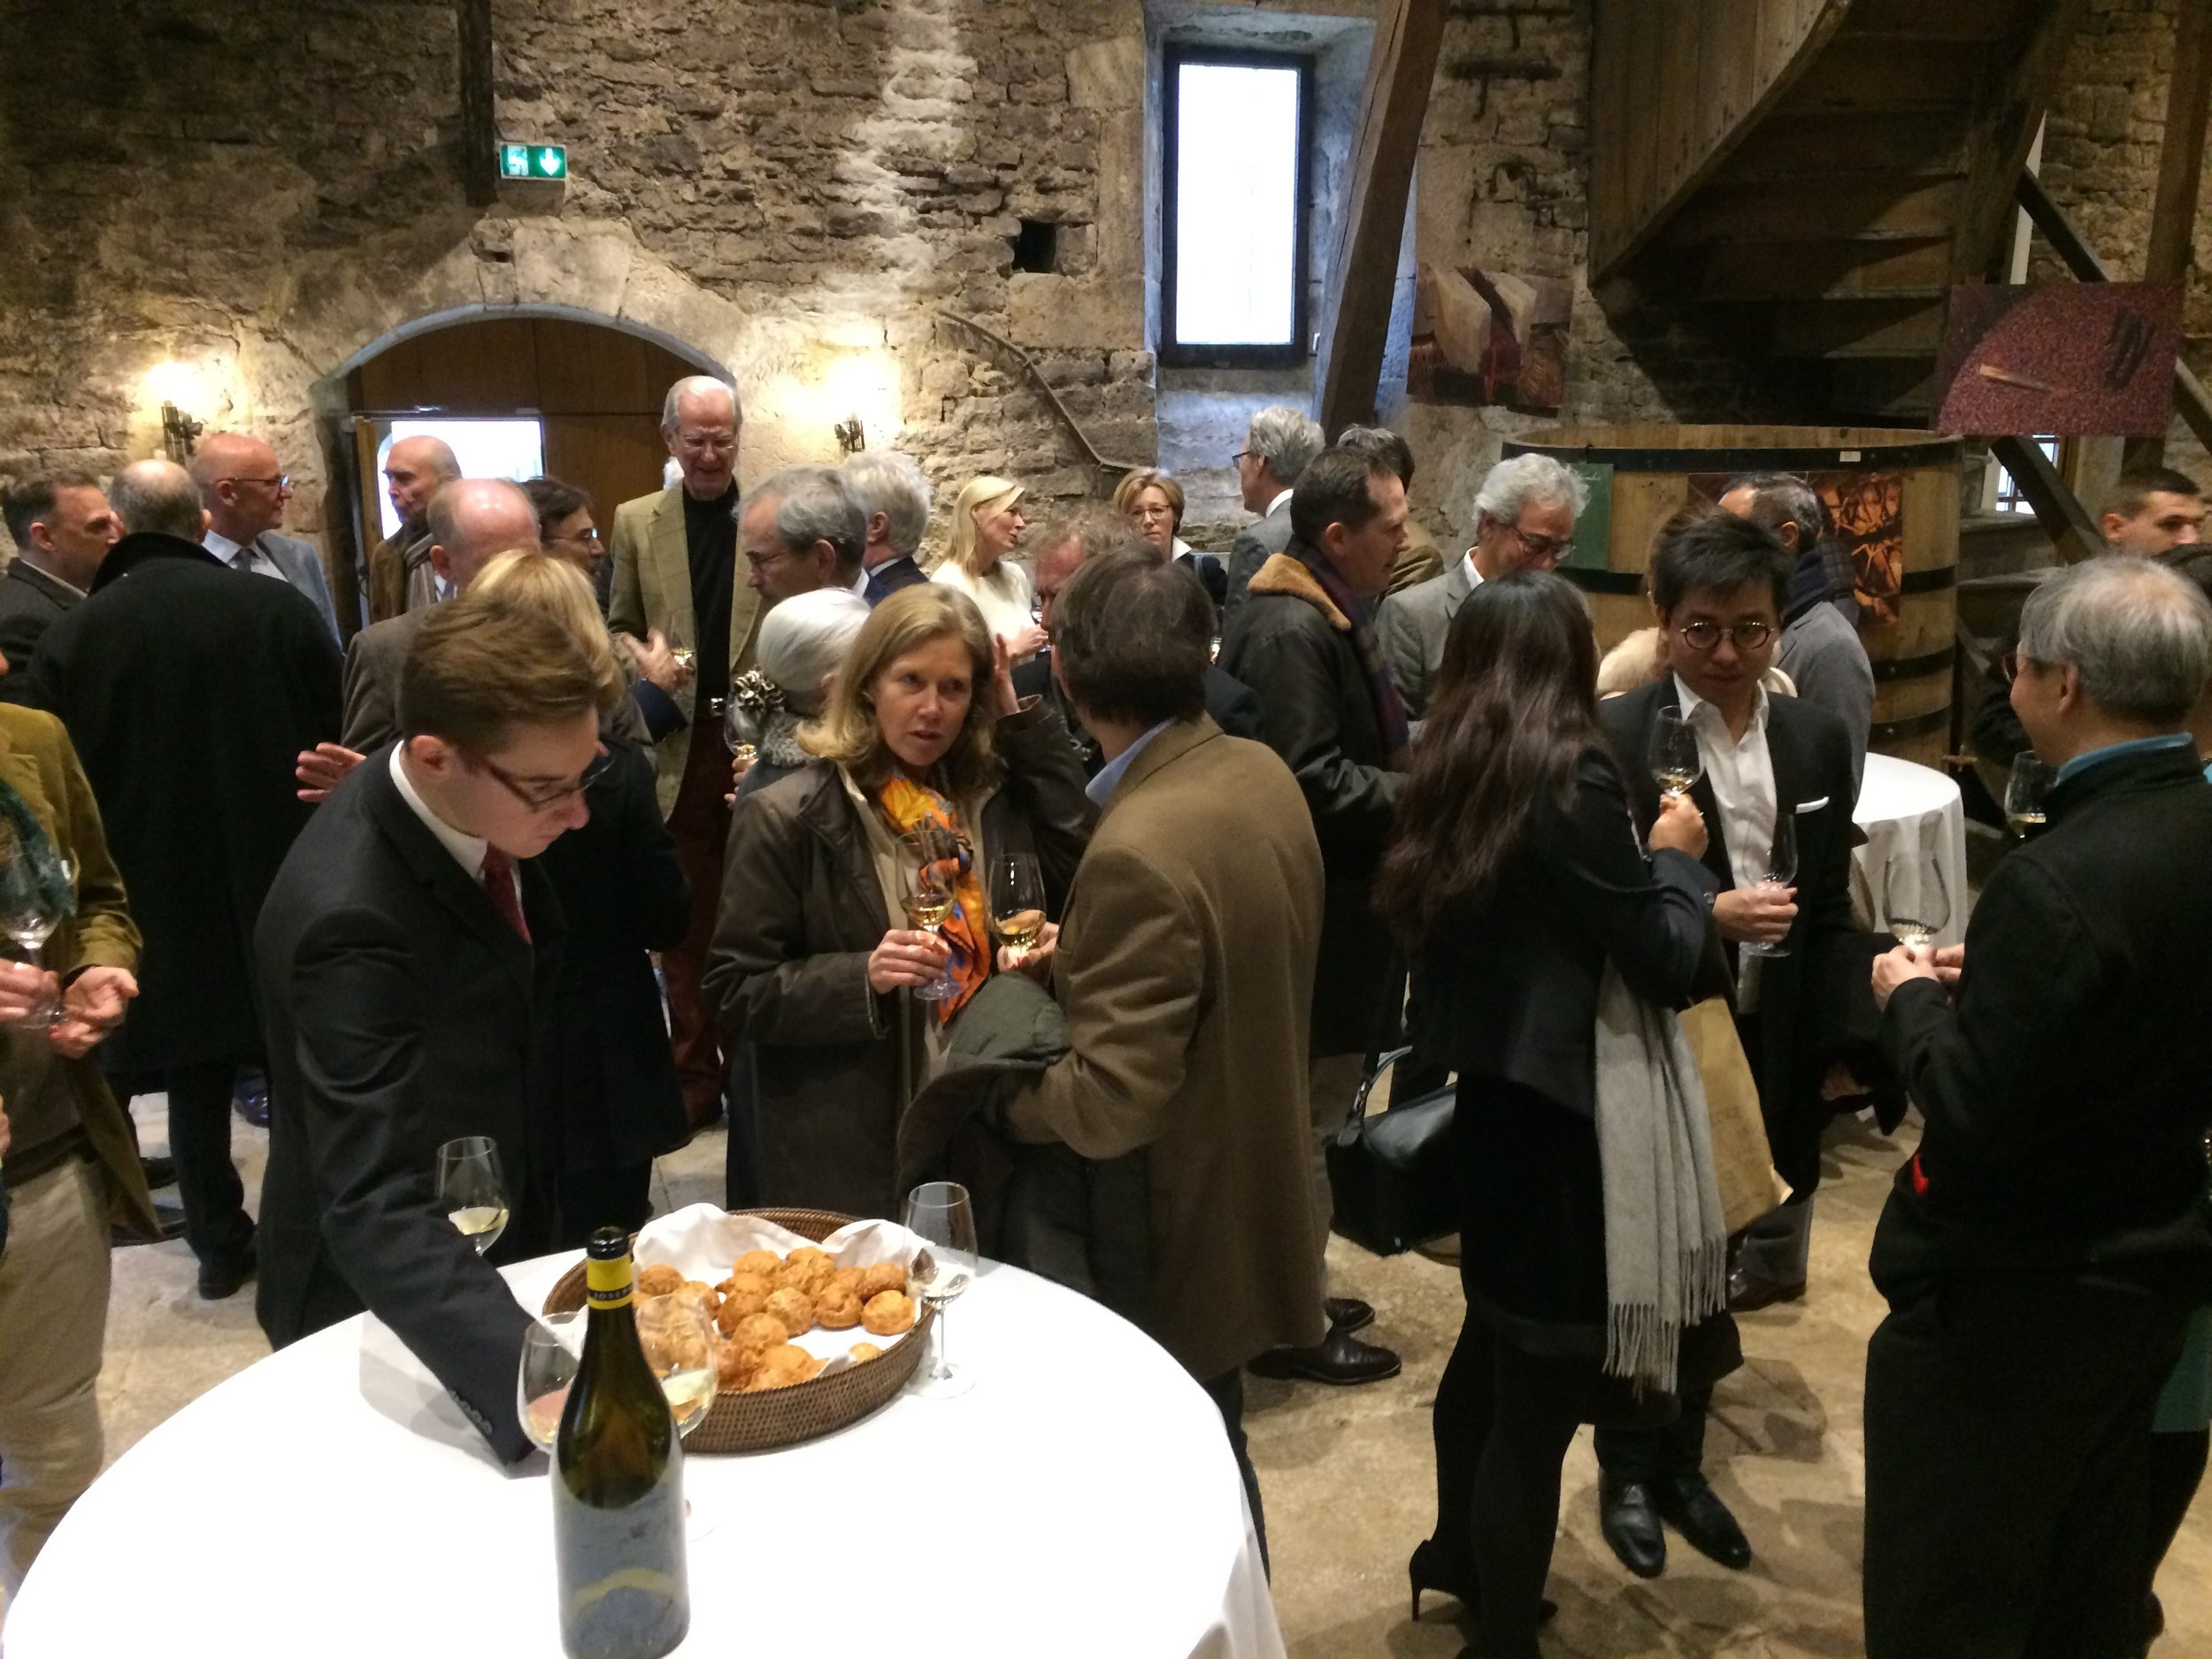 An apéritif before the Paulée, at Drouhin in Beaune (the old press house, complete with working press from the 1500s)